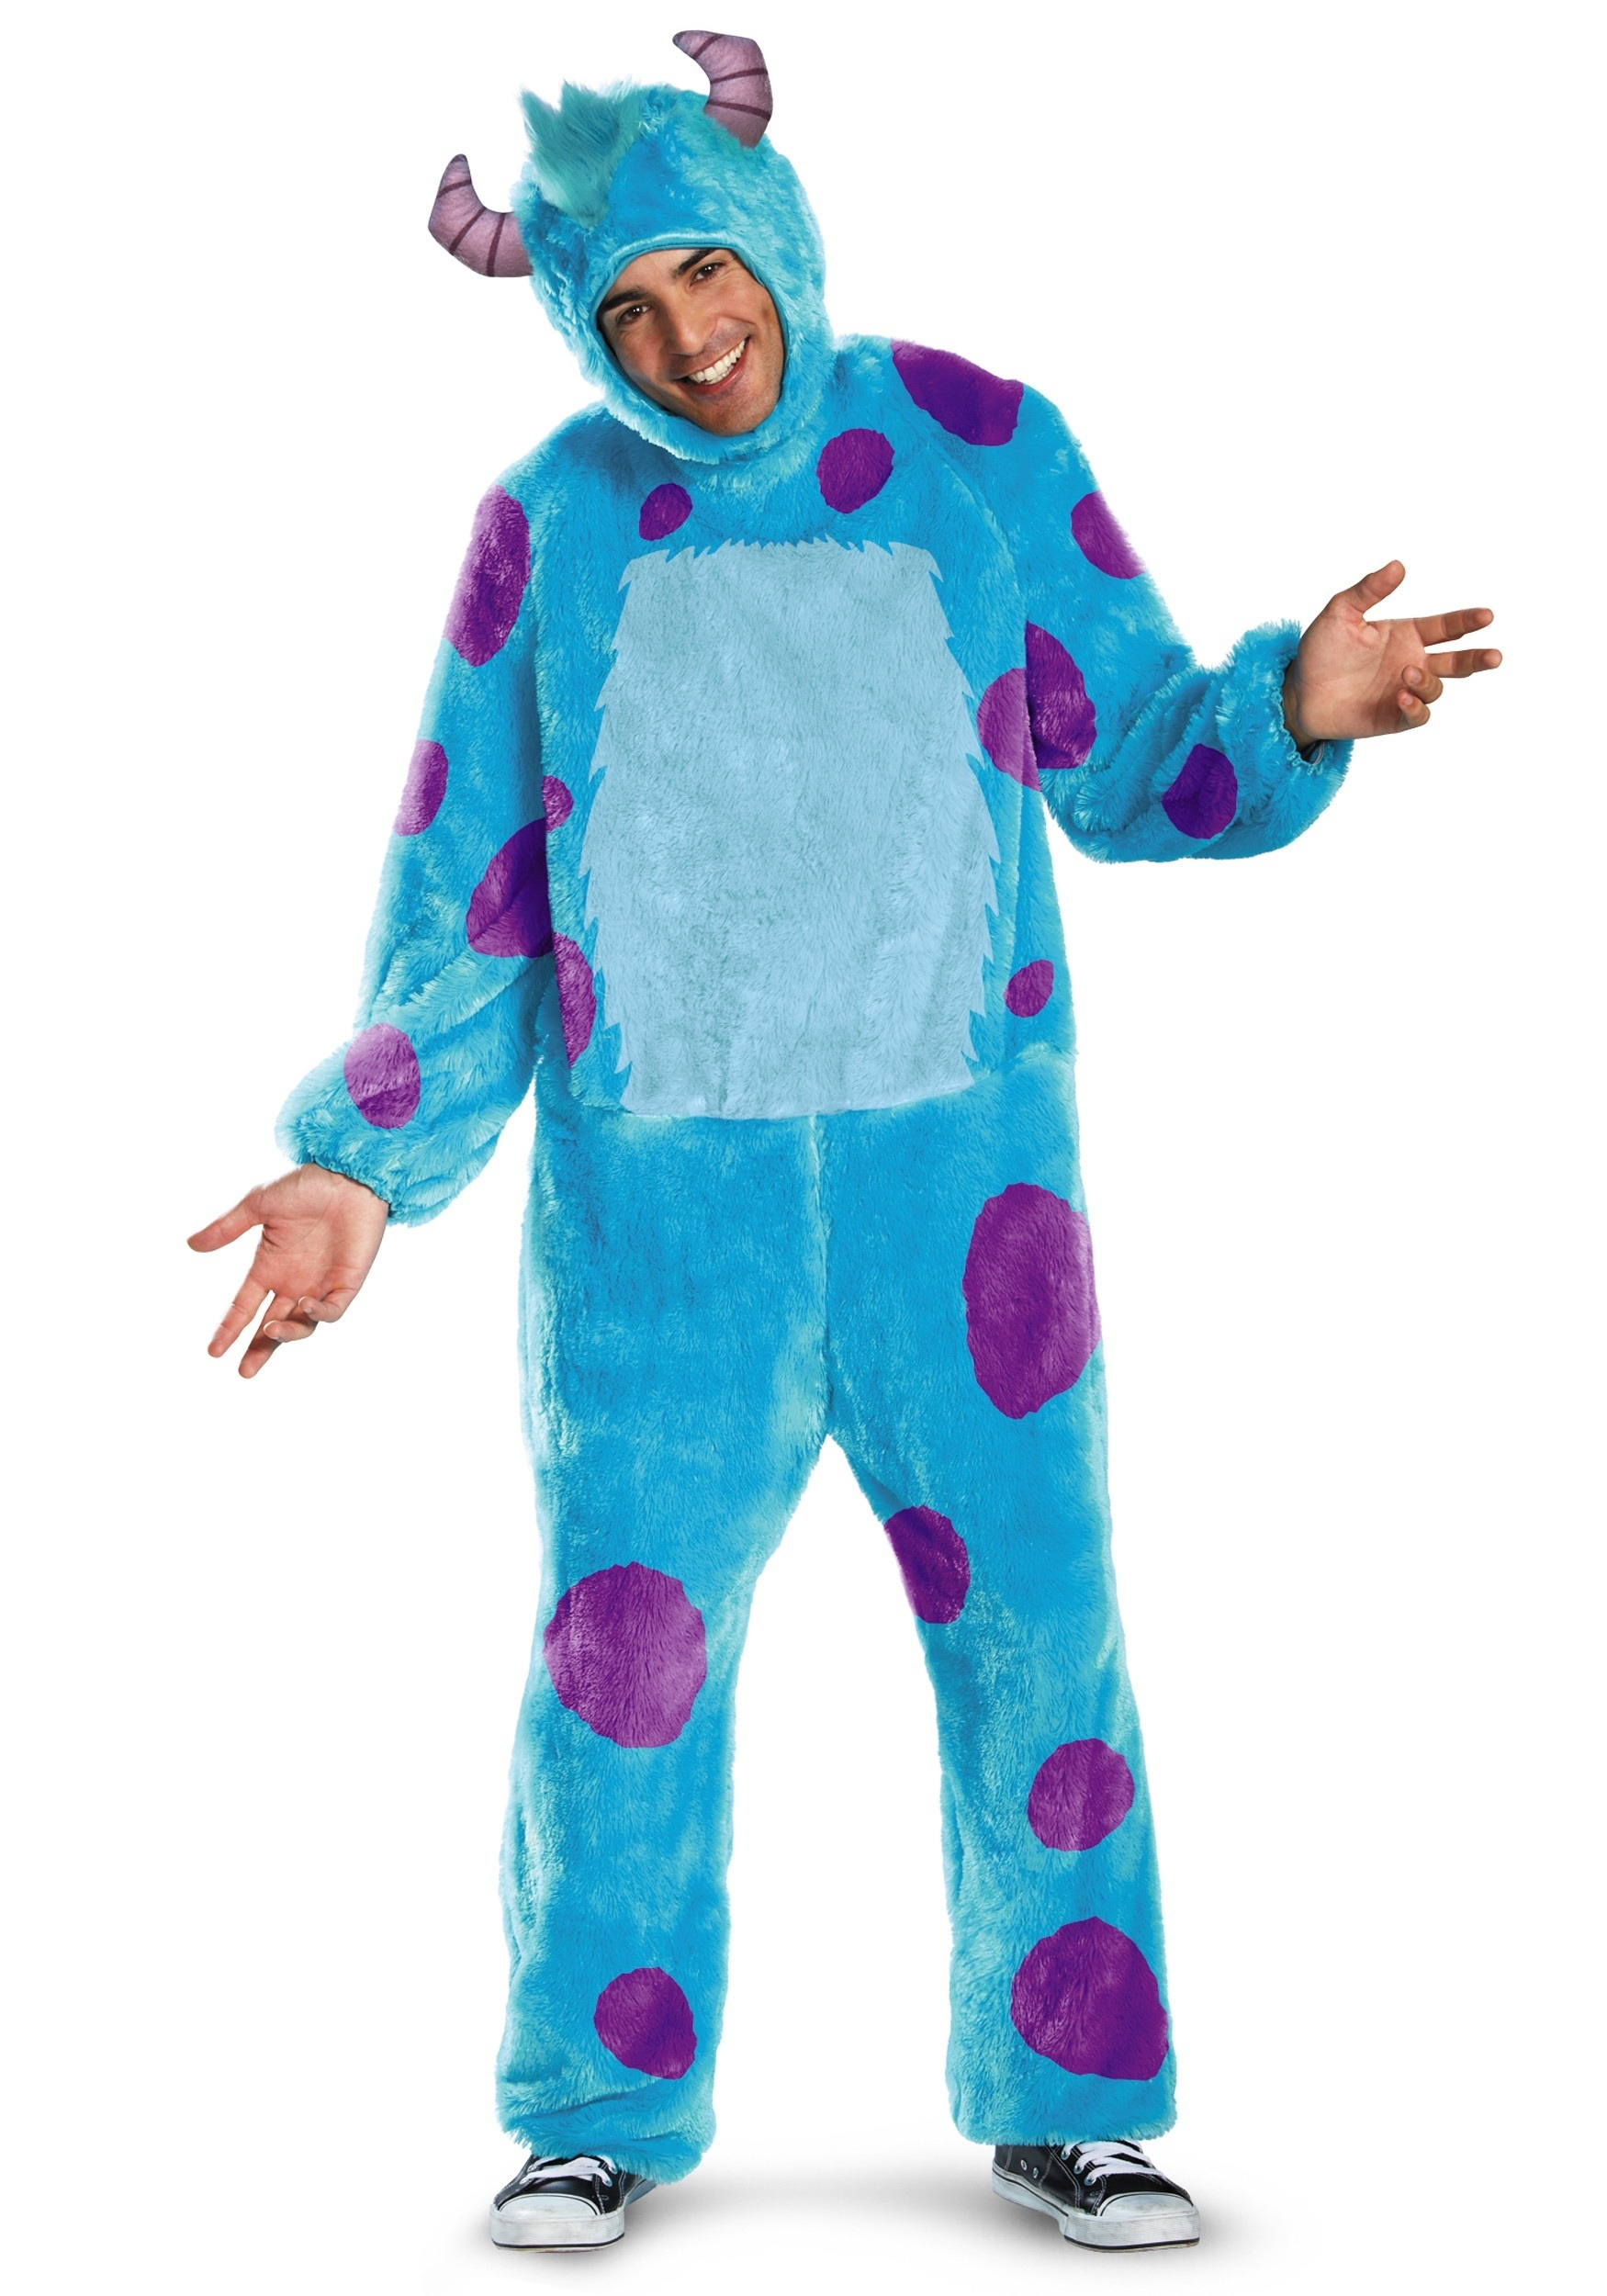 Monsters Inc Sulley Adult Costume